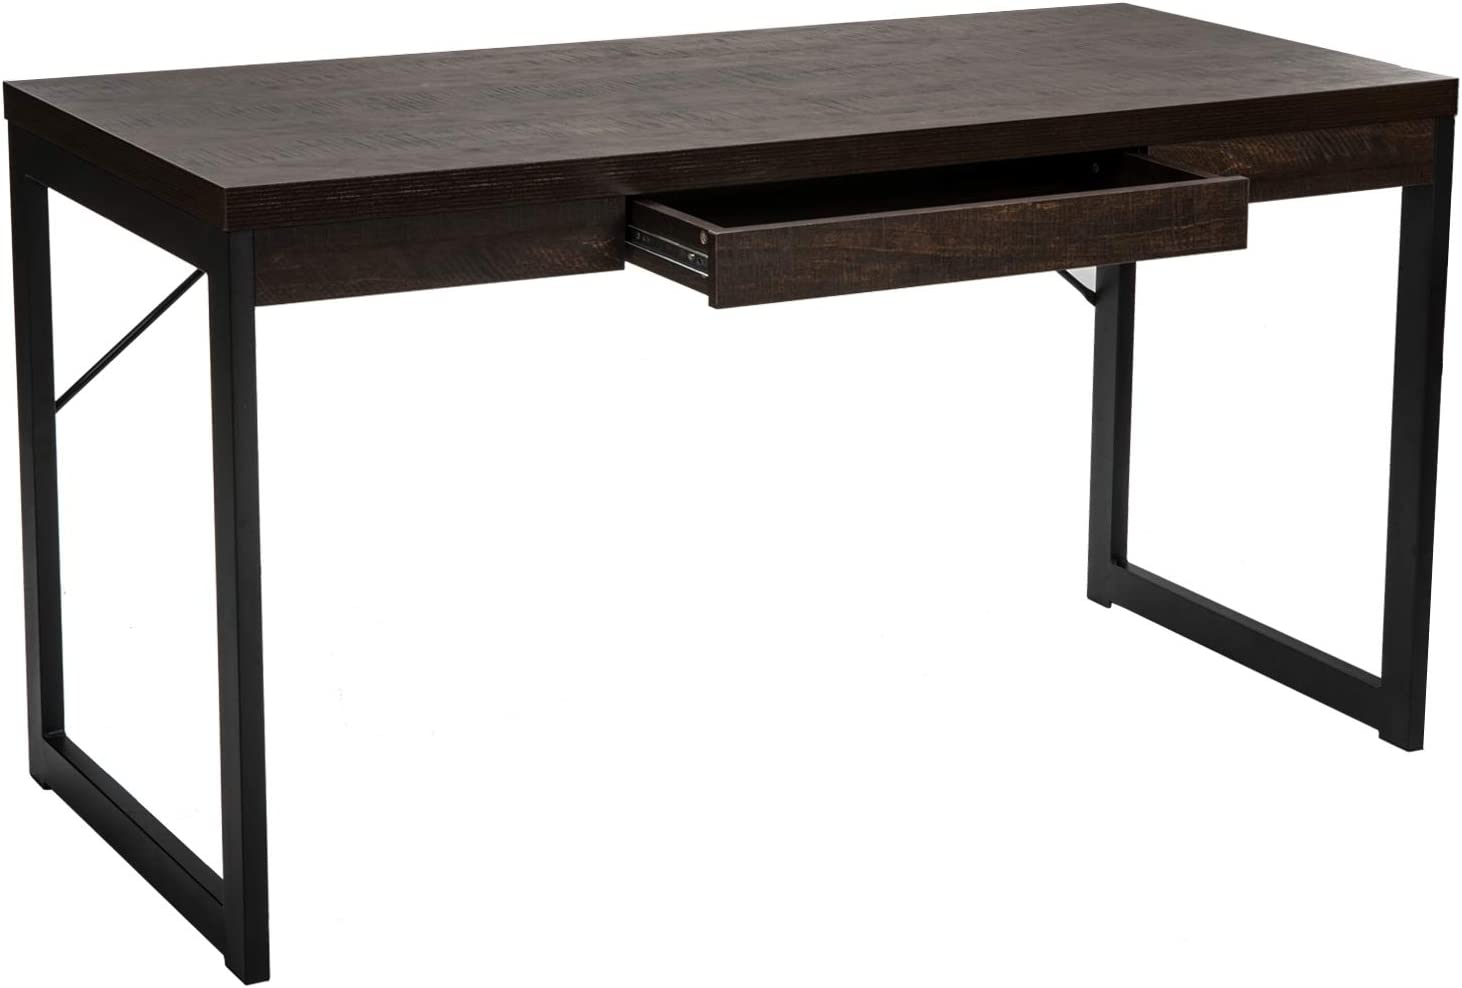 "IRONCK Computer Desk with Drawer 55"" Writing Desk, Industrial Office Desk Table for Home Office, Sturdy Metal Frame, Easy Assembly, Black Espresso"